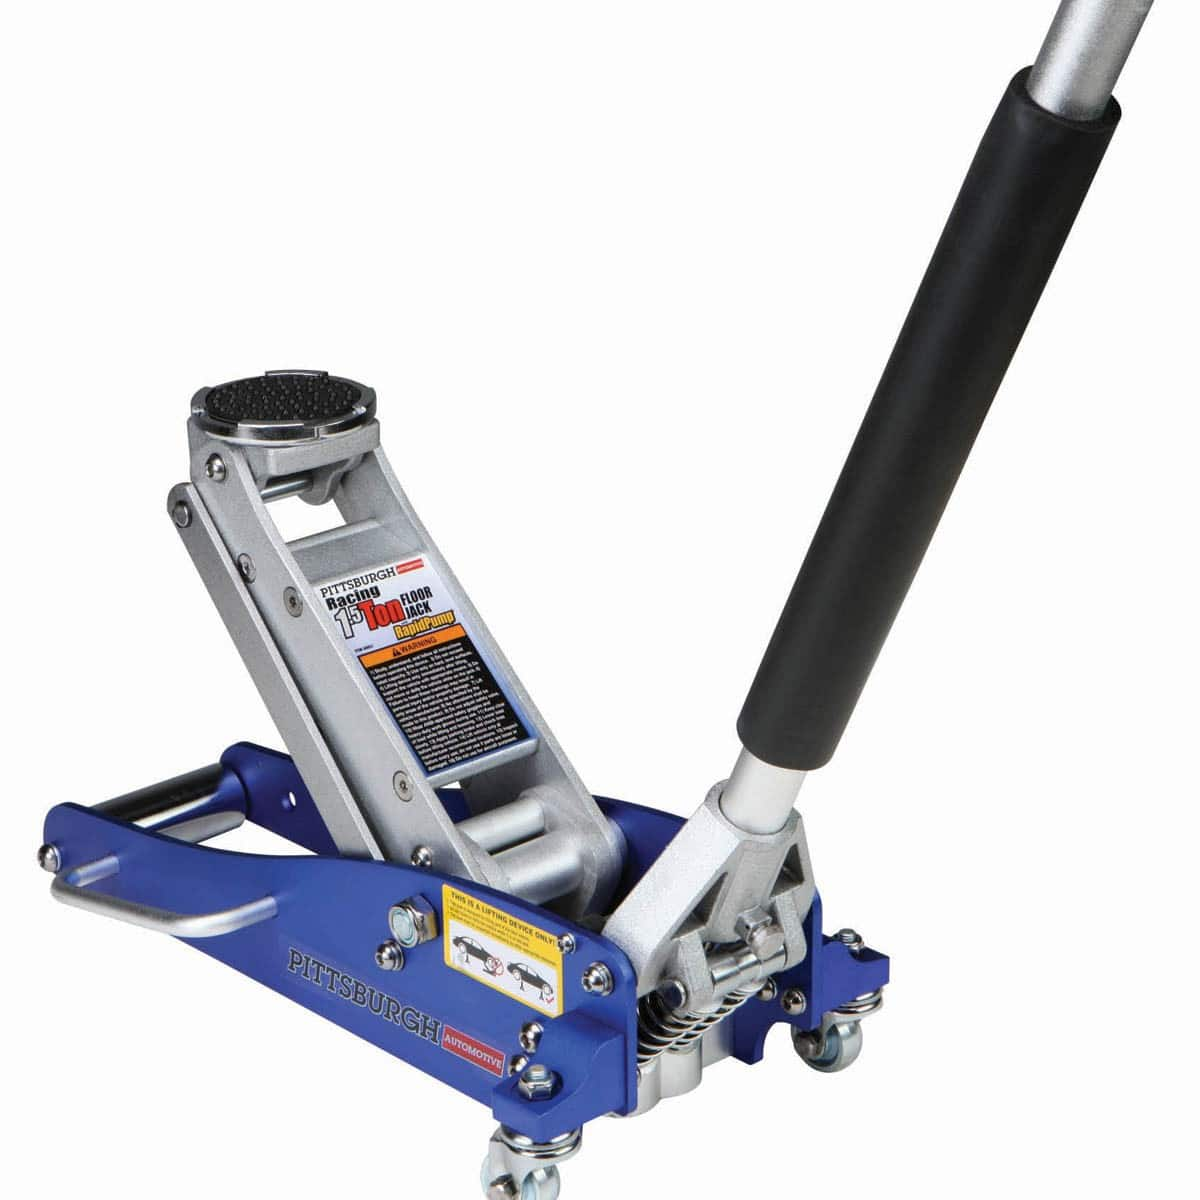 Floor Jack - Harbor Freight 1.5 Ton Cheapy = $57.99 OR Advance Auto Parts 2.5 Ton ~$89